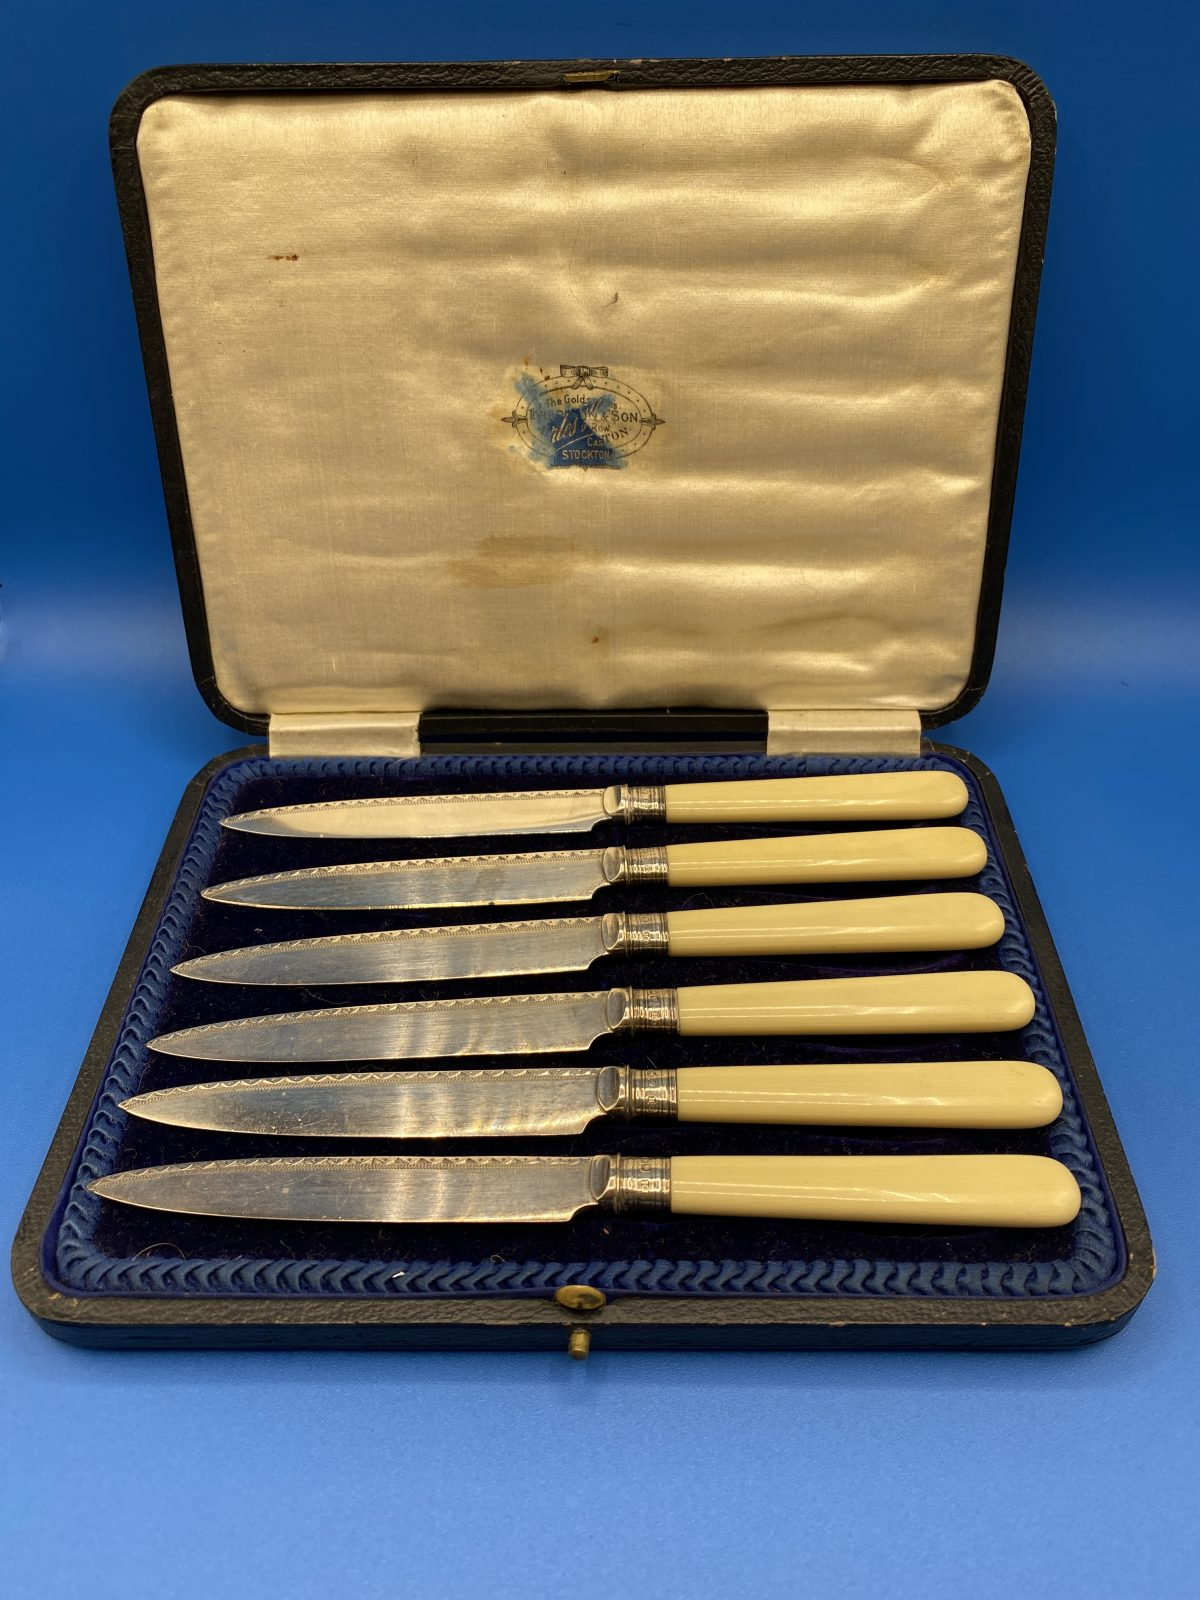 G3 - A Boxed Set of 6 Bone Handled Fruit Knives with Silver Ferrules, Sheffield 1921.  £48